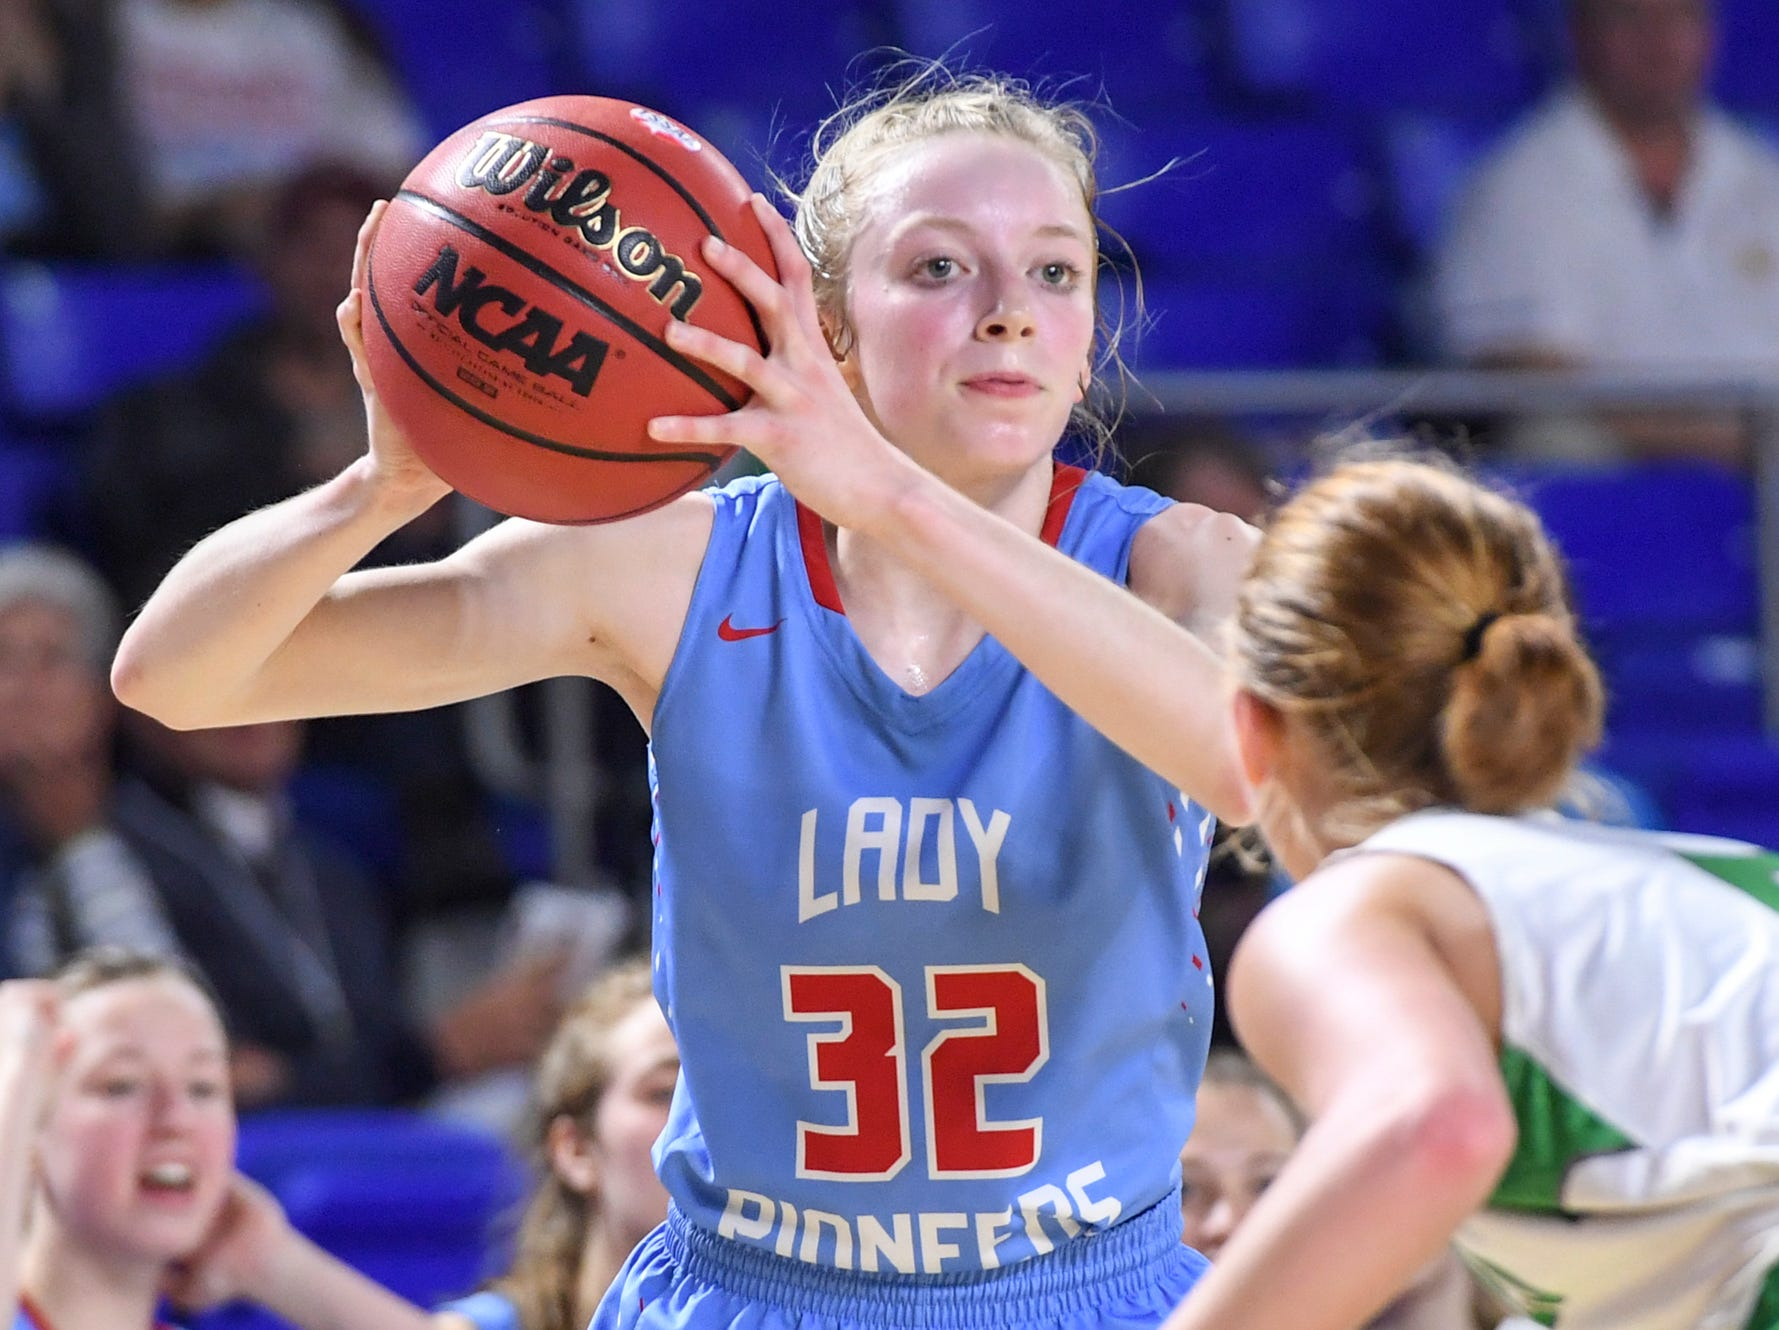 Gibson County's KJ White (32) is guarded by Midway's Paige Bacon (5) as she looks for an open teammate during their Class A semifinal game, Friday, March 8, 2019, in  Murfreesboro. Gibson County defeated Midway, 75-61.